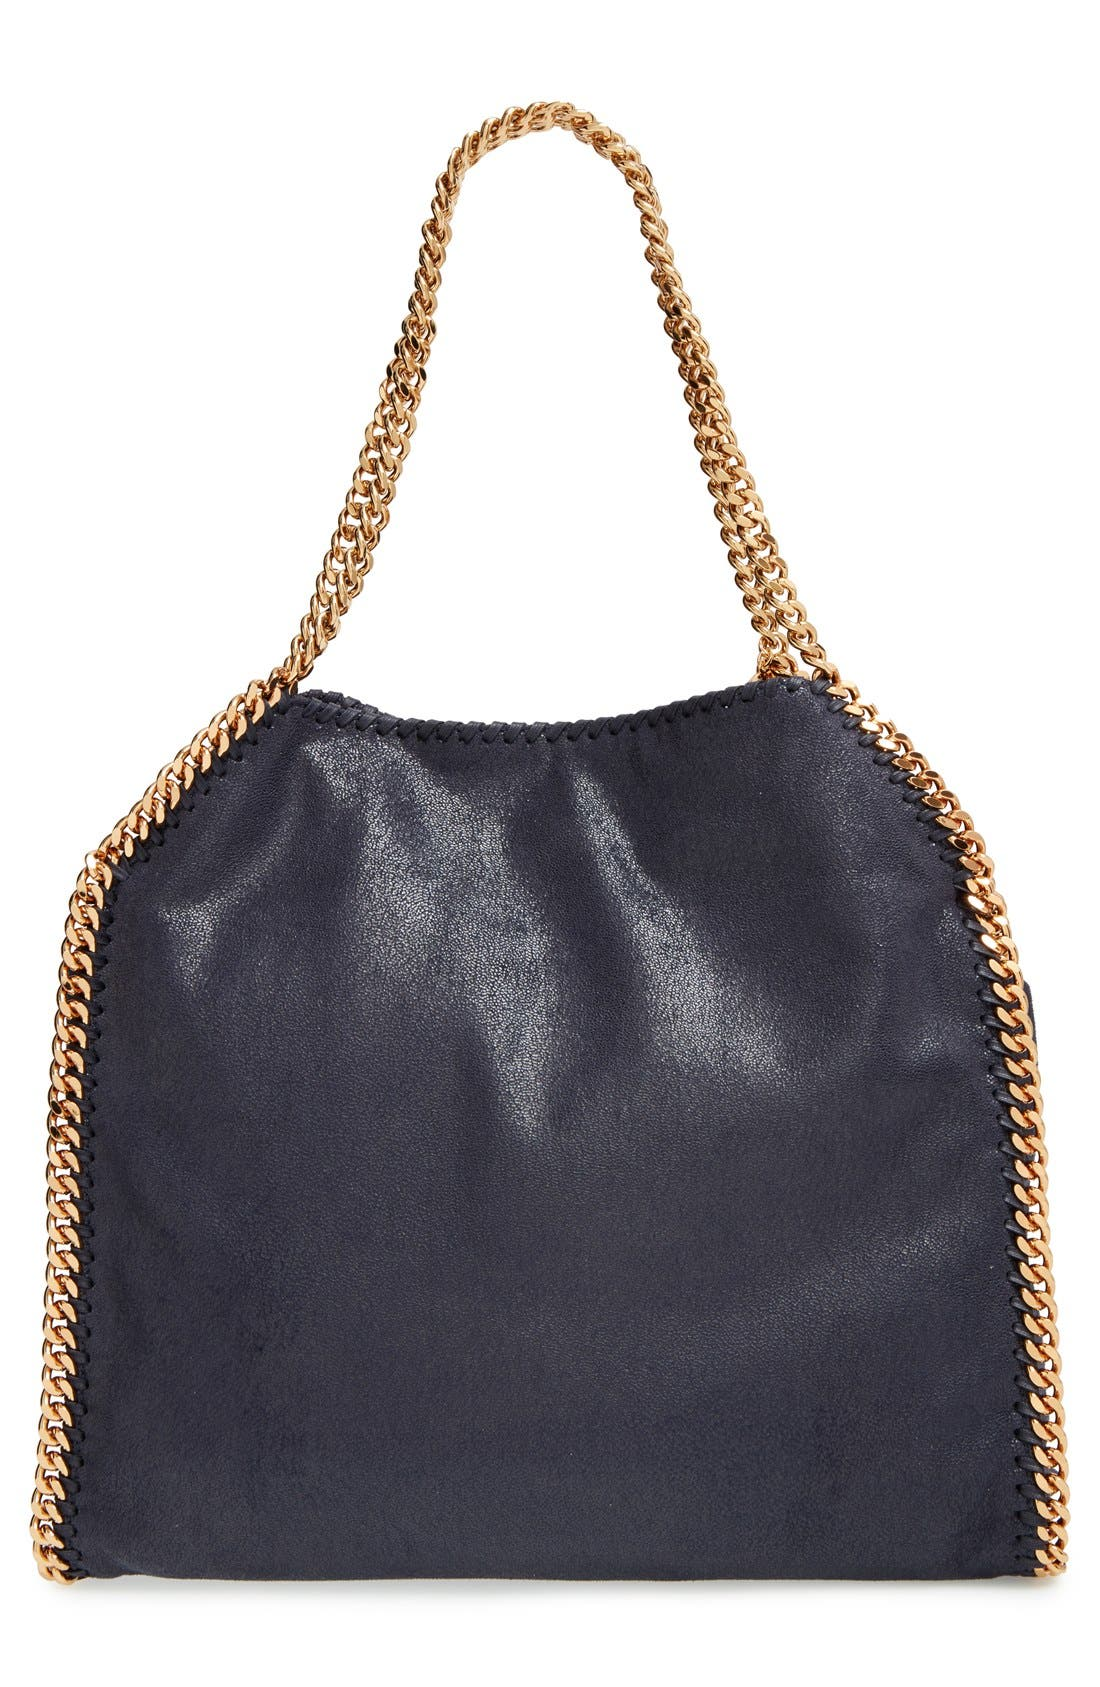 'Small Falabella - Shaggy Deer' Faux Leather Tote,                             Alternate thumbnail 3, color,                             400